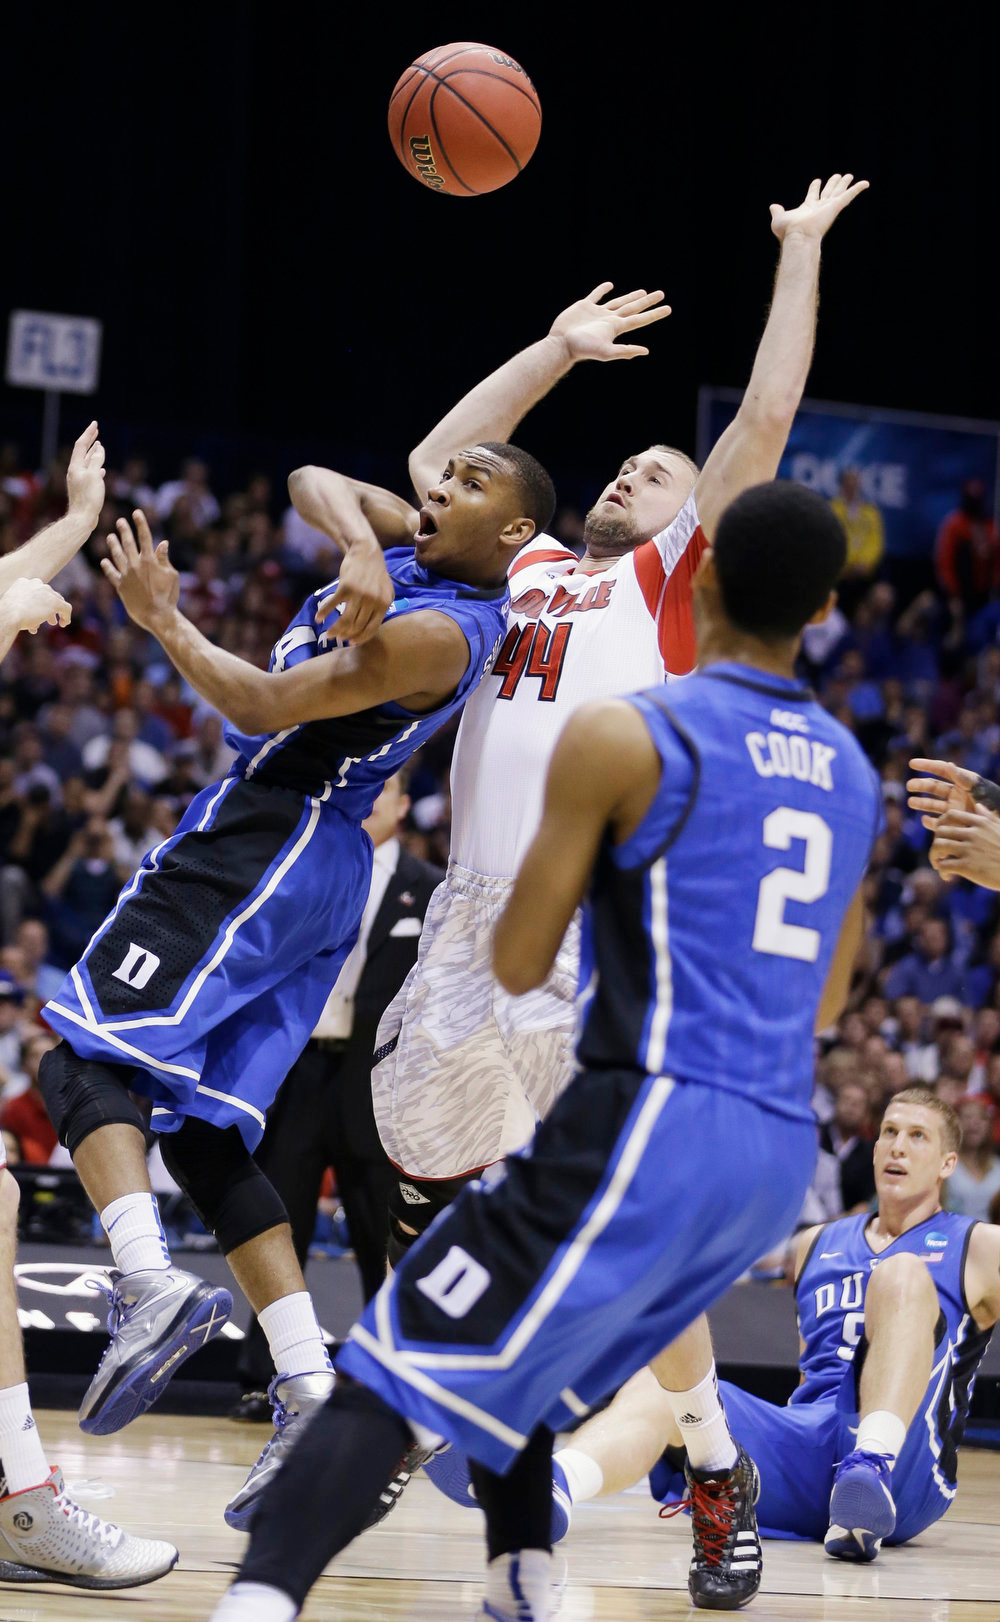 . Duke guard Rasheed Sulaimon passes the ball to Quinn Cook (2) under pressure from Louisville forward Stephan Van Treese (44) during the first half of the Midwest Regional final in the NCAA college basketball tournament, Sunday, March 31, 2013, in Indianapolis. (AP Photo/Darron Cummings)